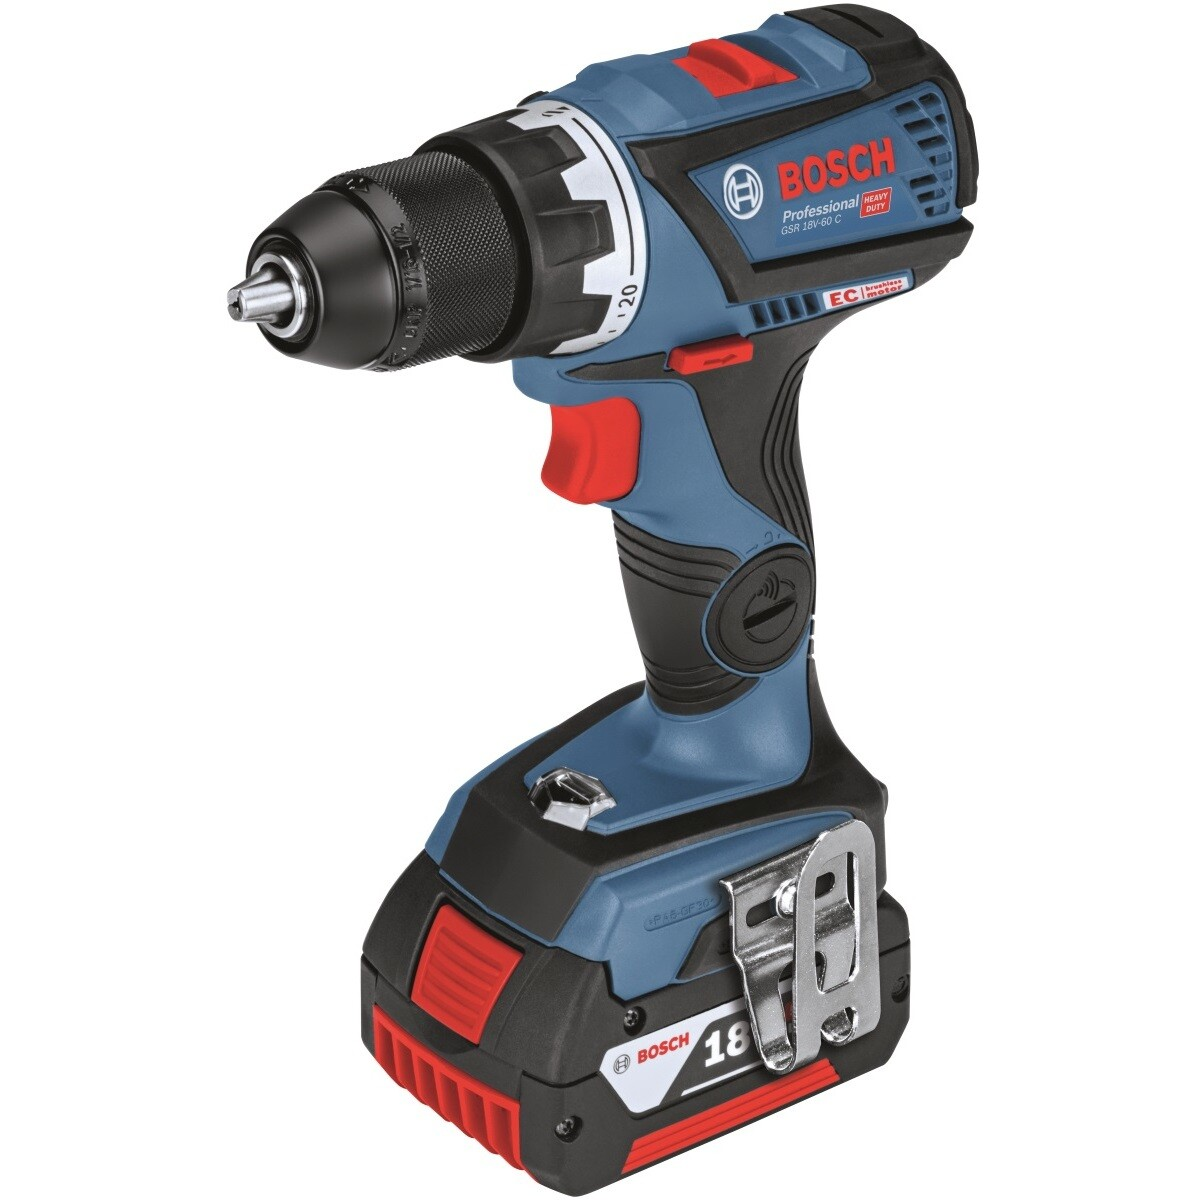 Bosch GSR 18V-60 C C Body Only 18V Drill/Driver in Carton - Connection Ready